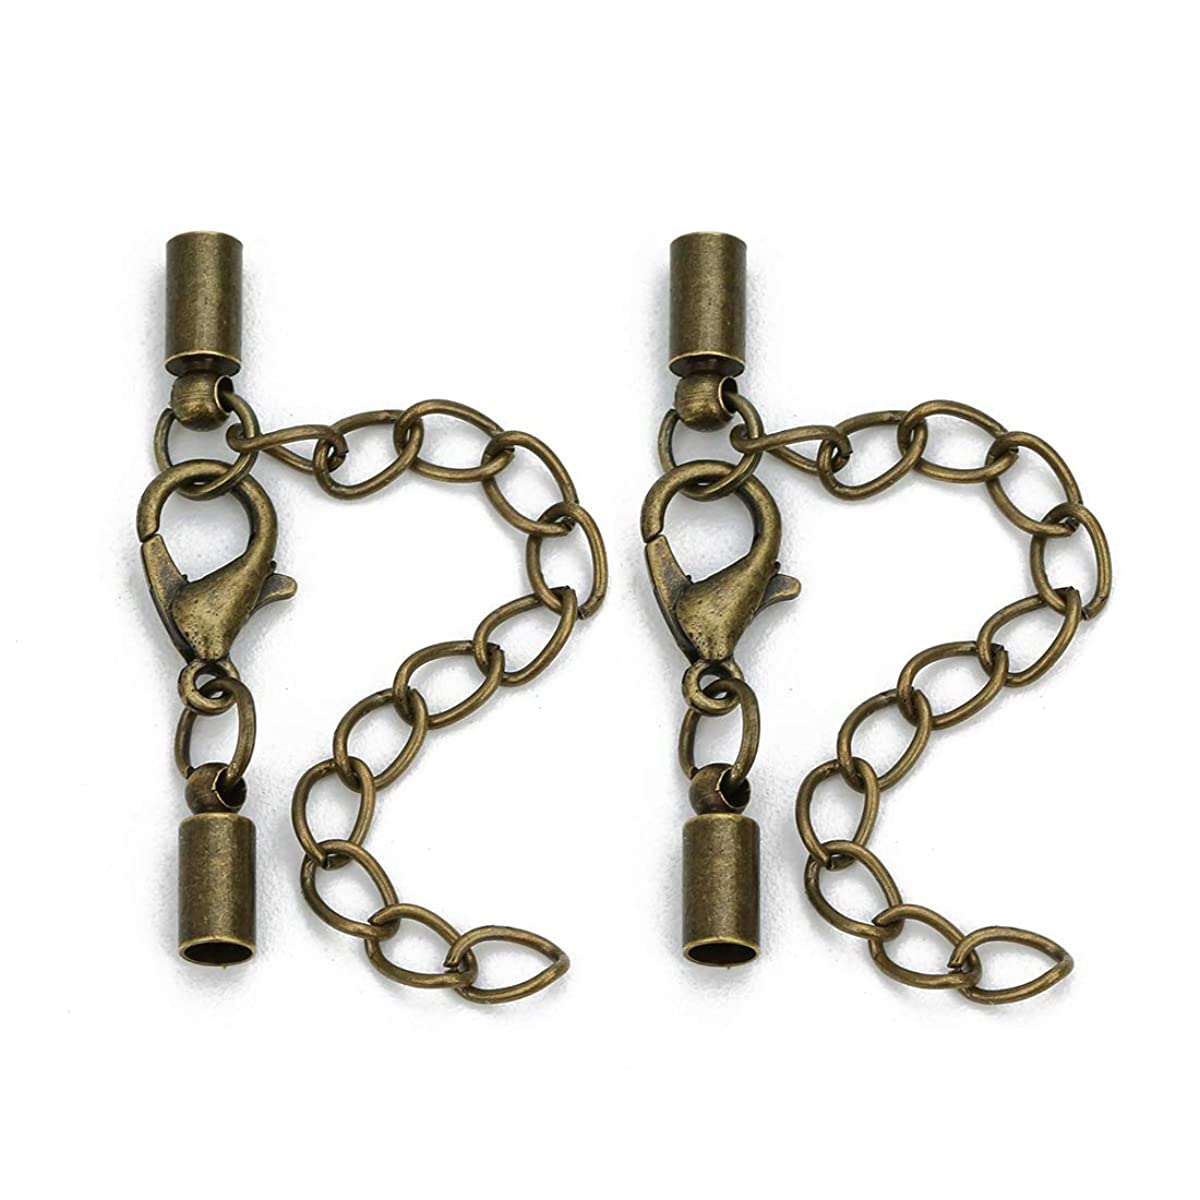 Forise 20pcs Leather Cord End Clasps Connectors with Lobster Clasp end caps Extender Chain for DIY Jewelry Making?Necklaces Bracelets (Antique Bronze, 3mm)